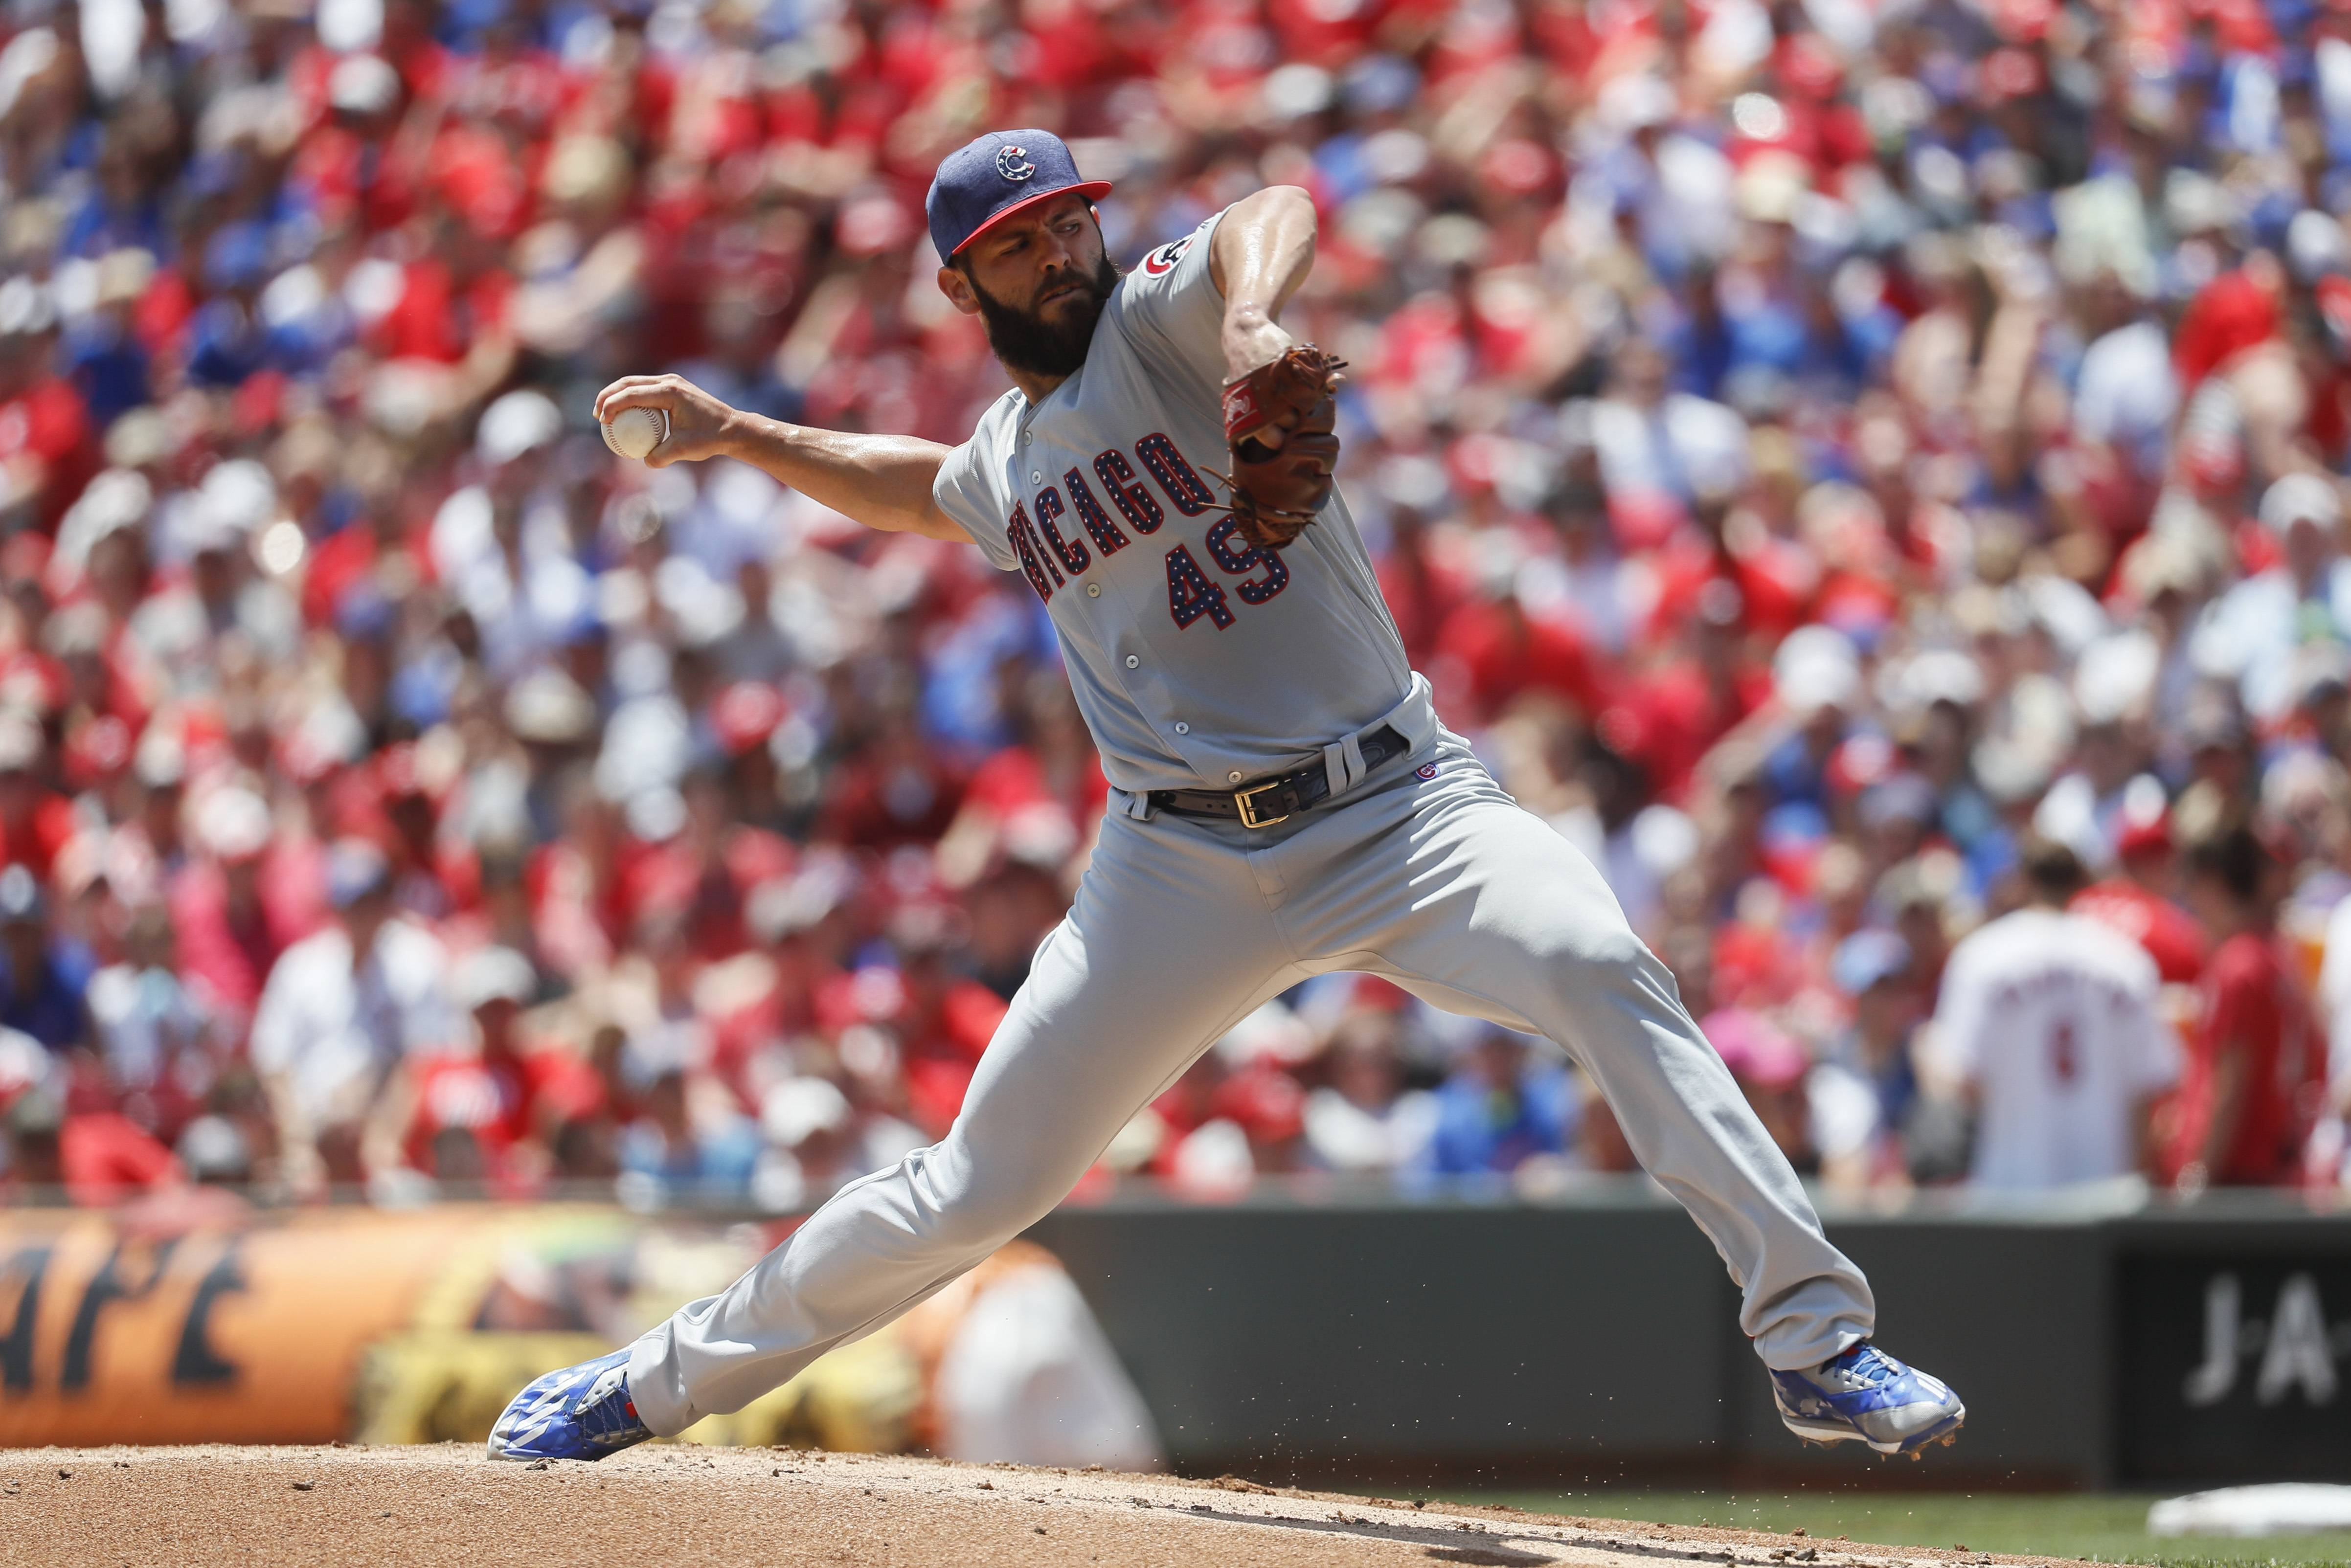 Chicago Cubs have second half to bounce back